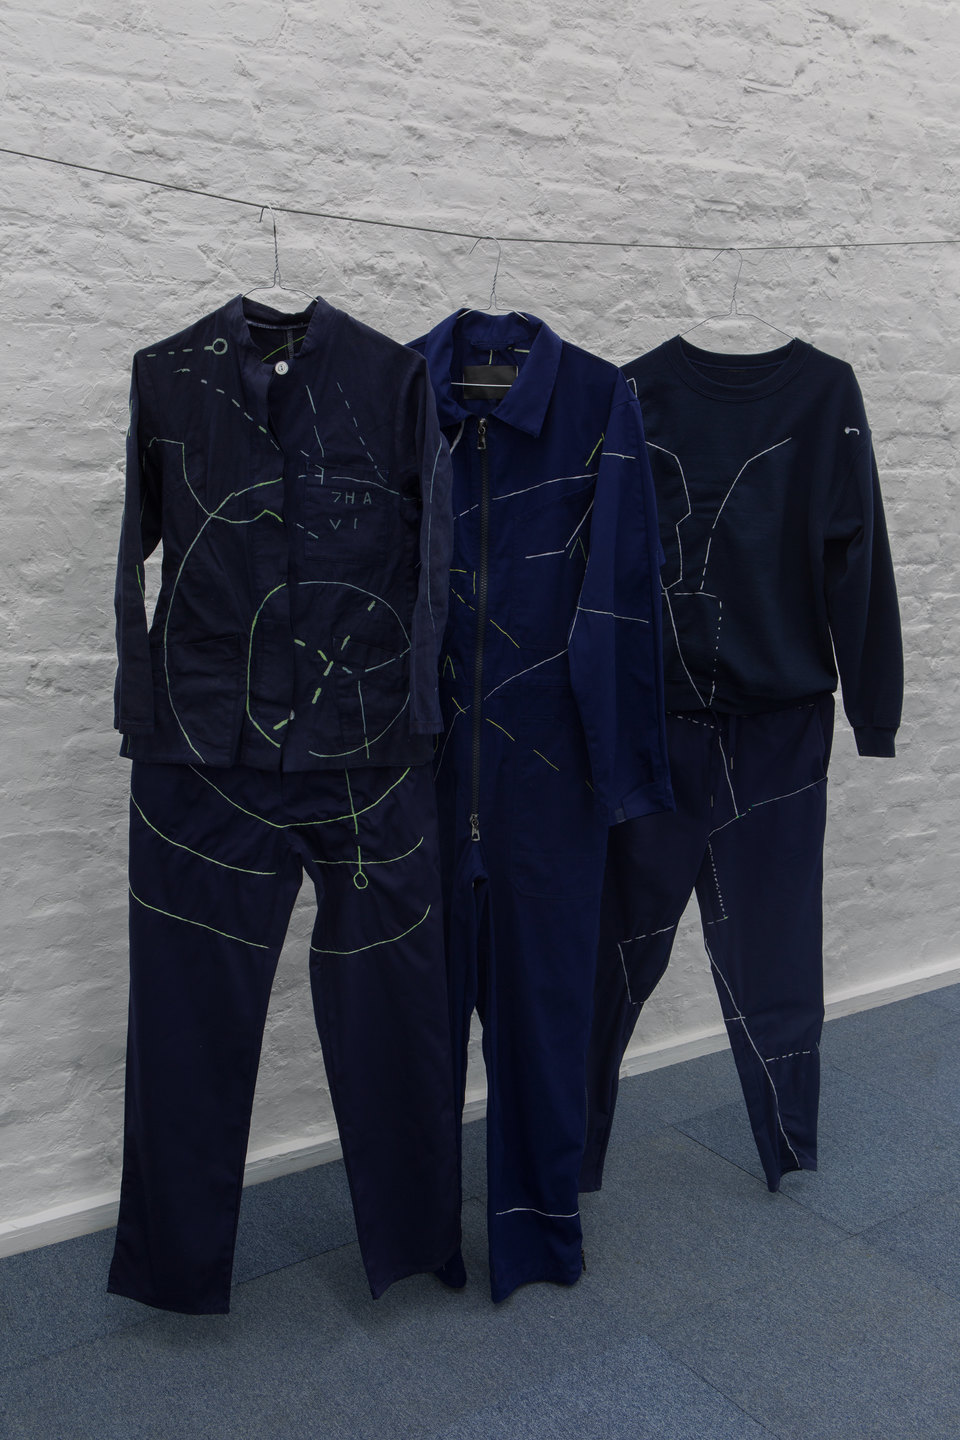 Angharad Williams and Mathis Gasser, 'Navigator Suits' (detail), 2018, Hergest:Nant, Cell Project Space